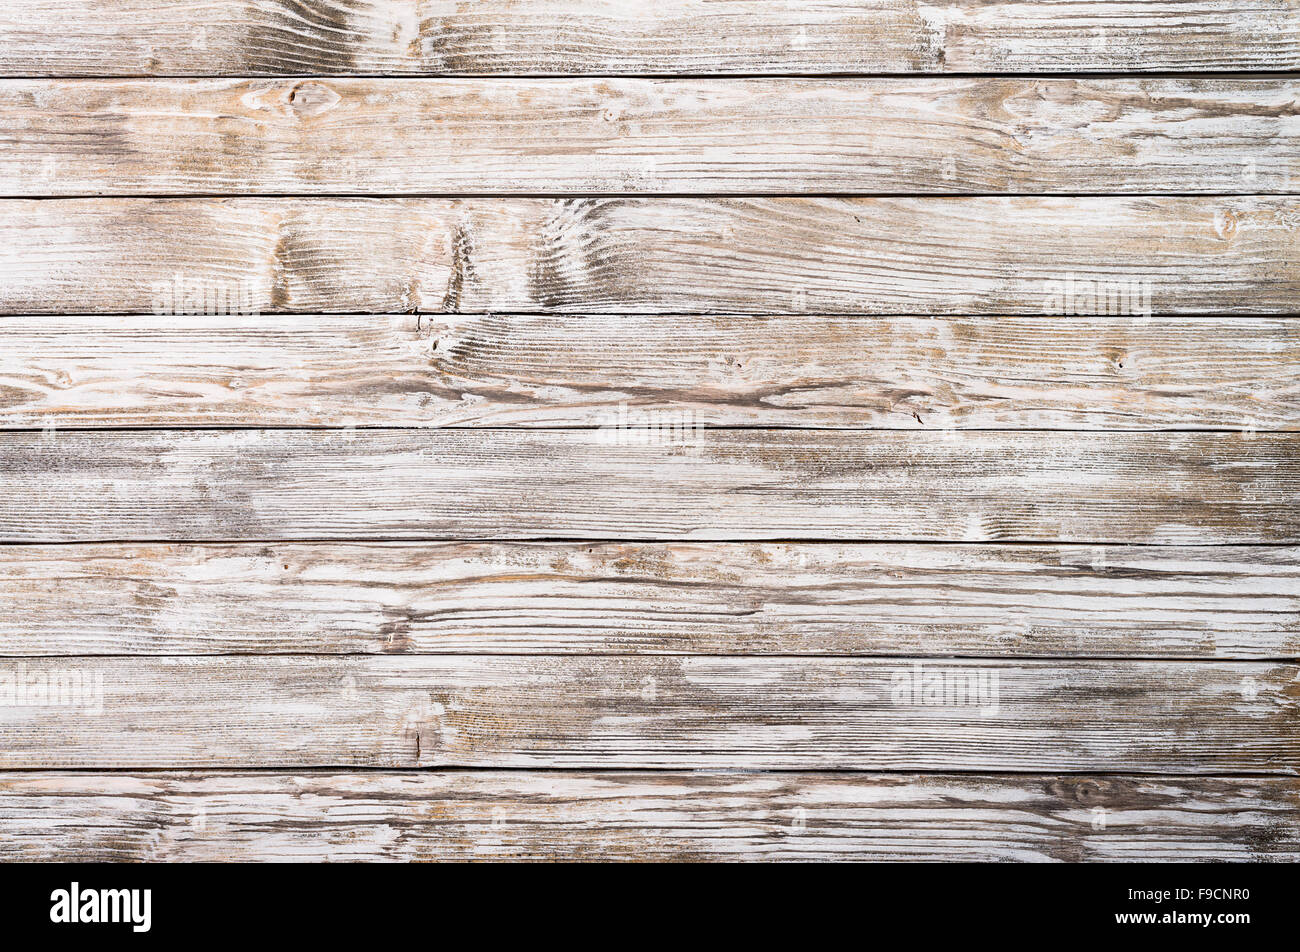 wooden table texture background - Stock Image